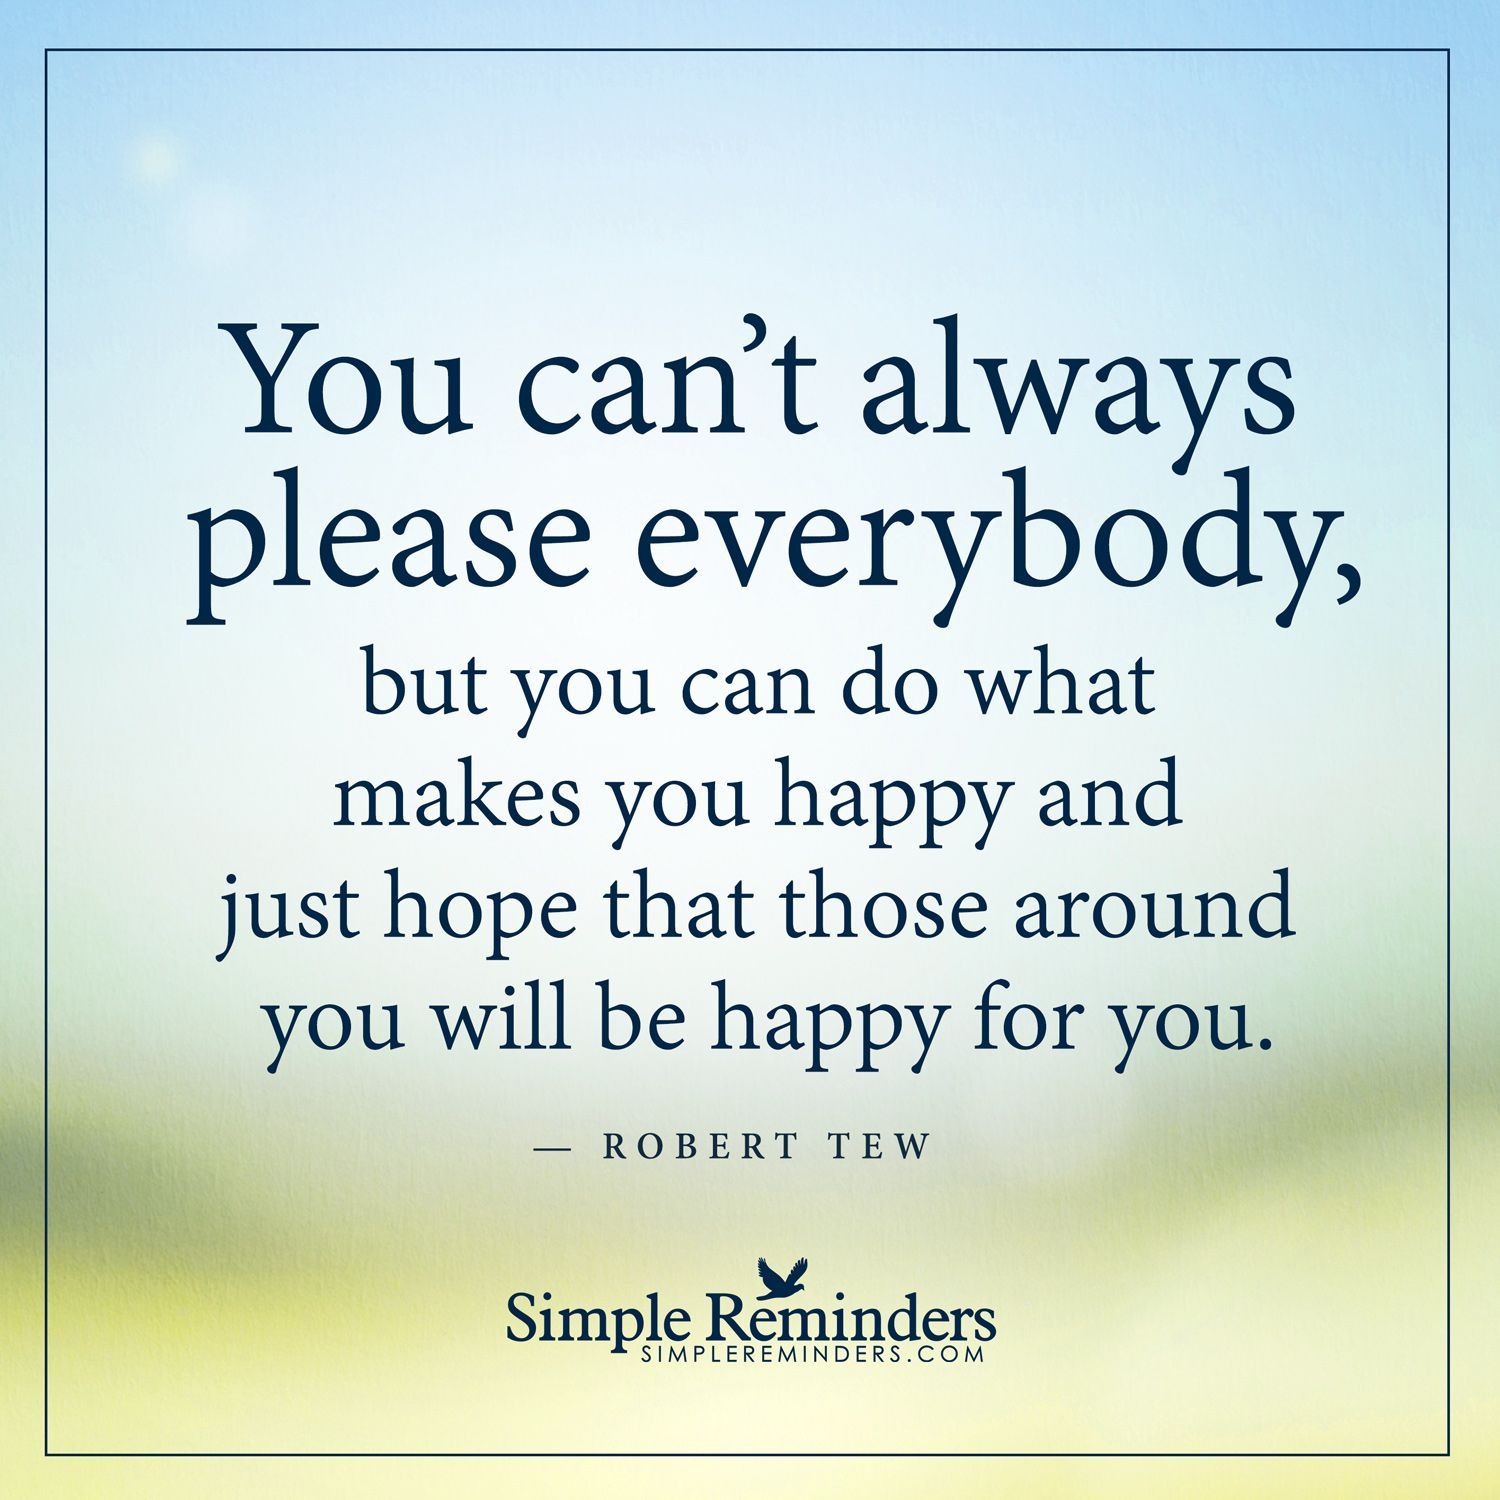 Quotes You Can Please Everyone: You Cannot Always Please Everybody You Can't Always Please